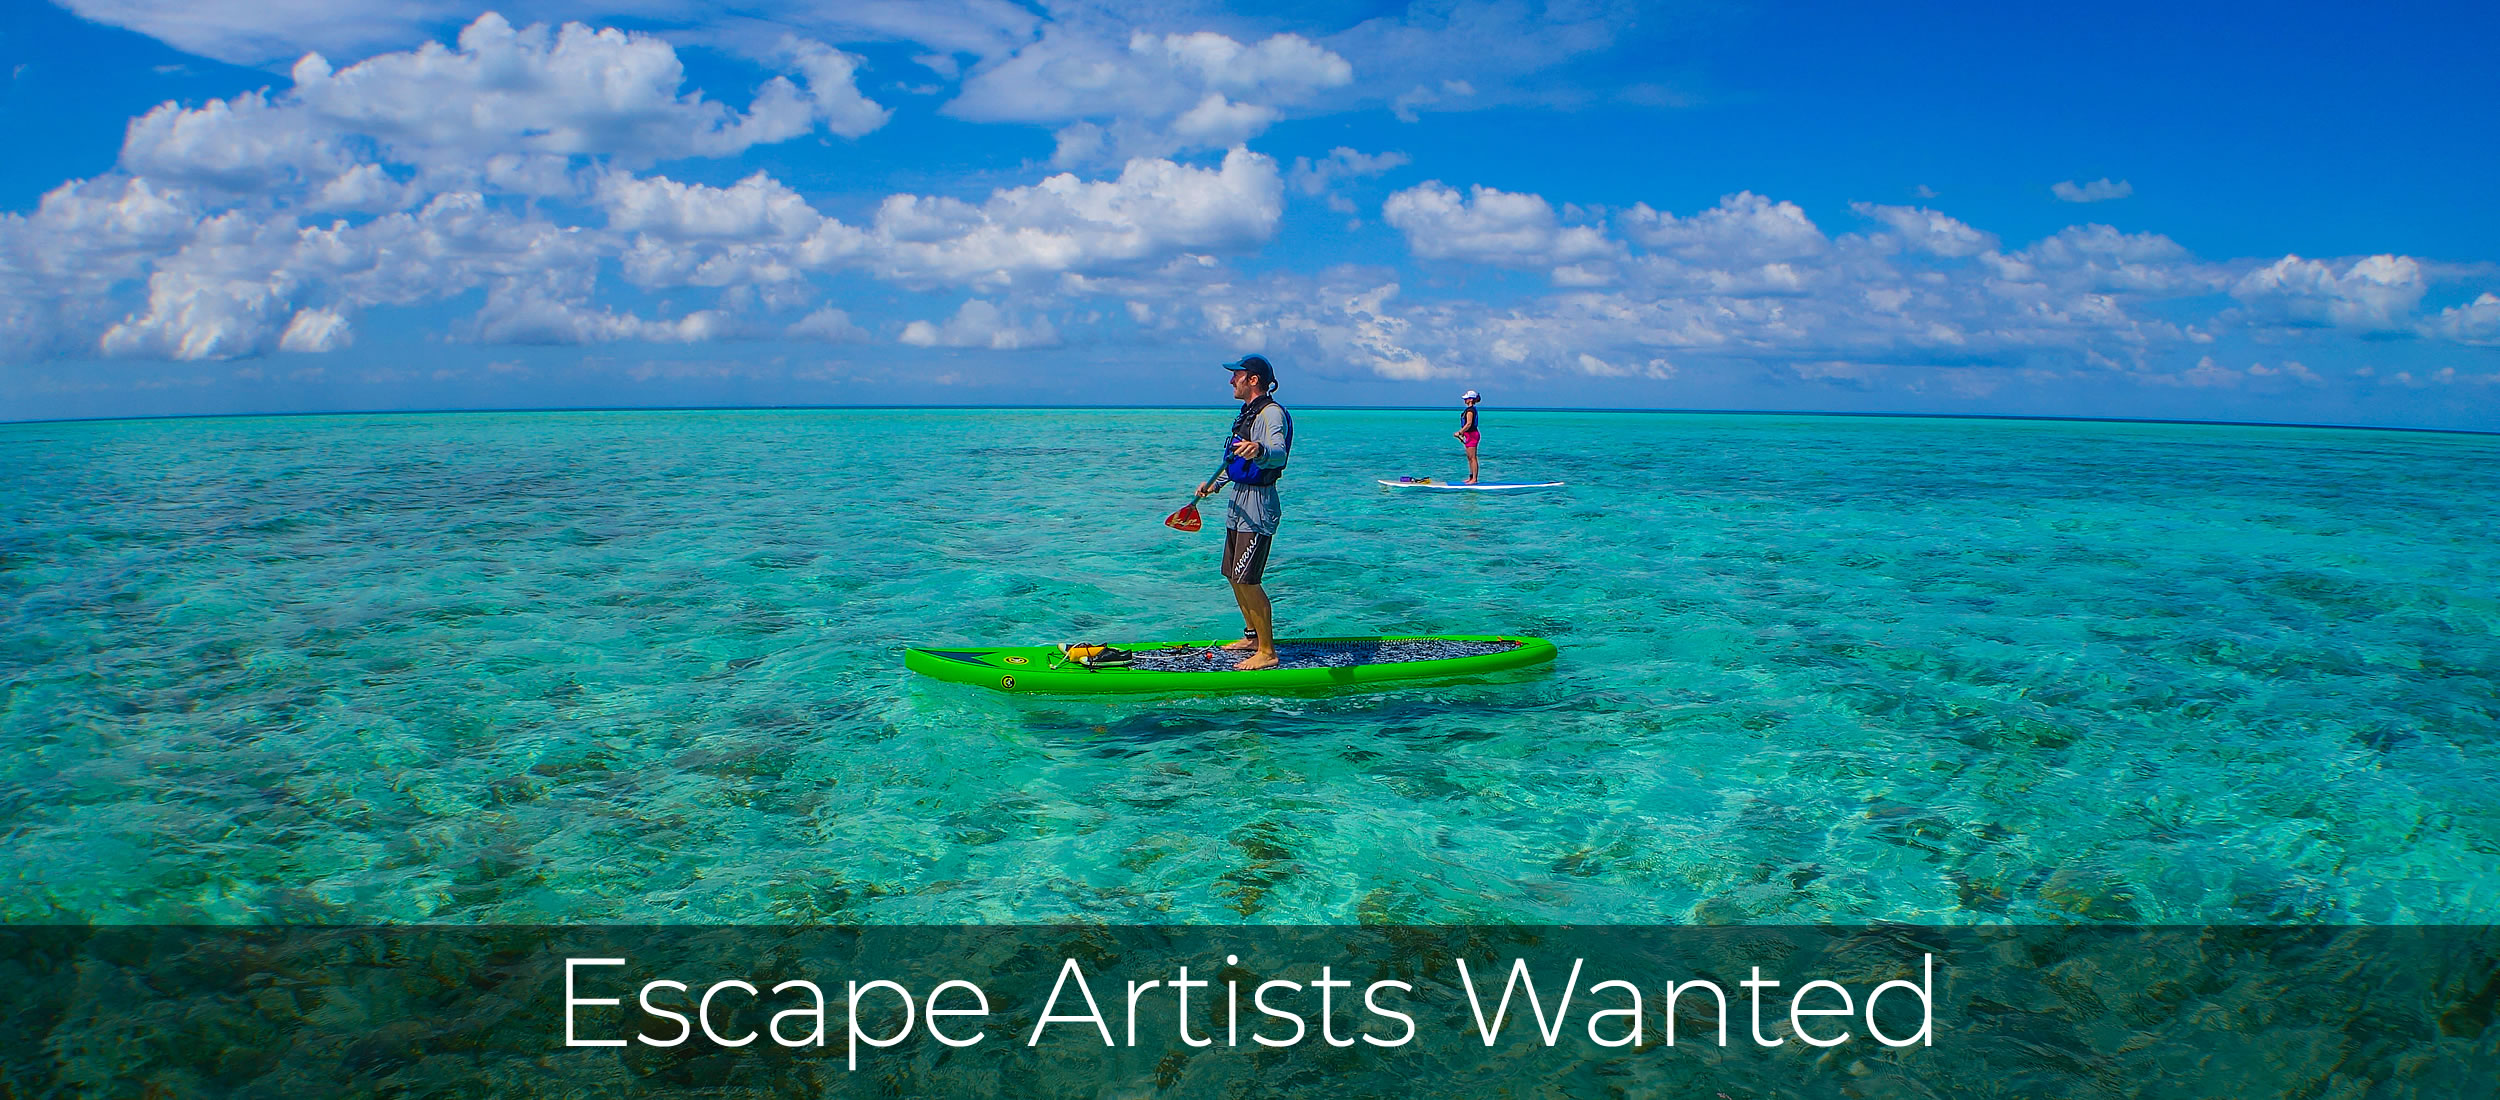 Escape Artists Wanted